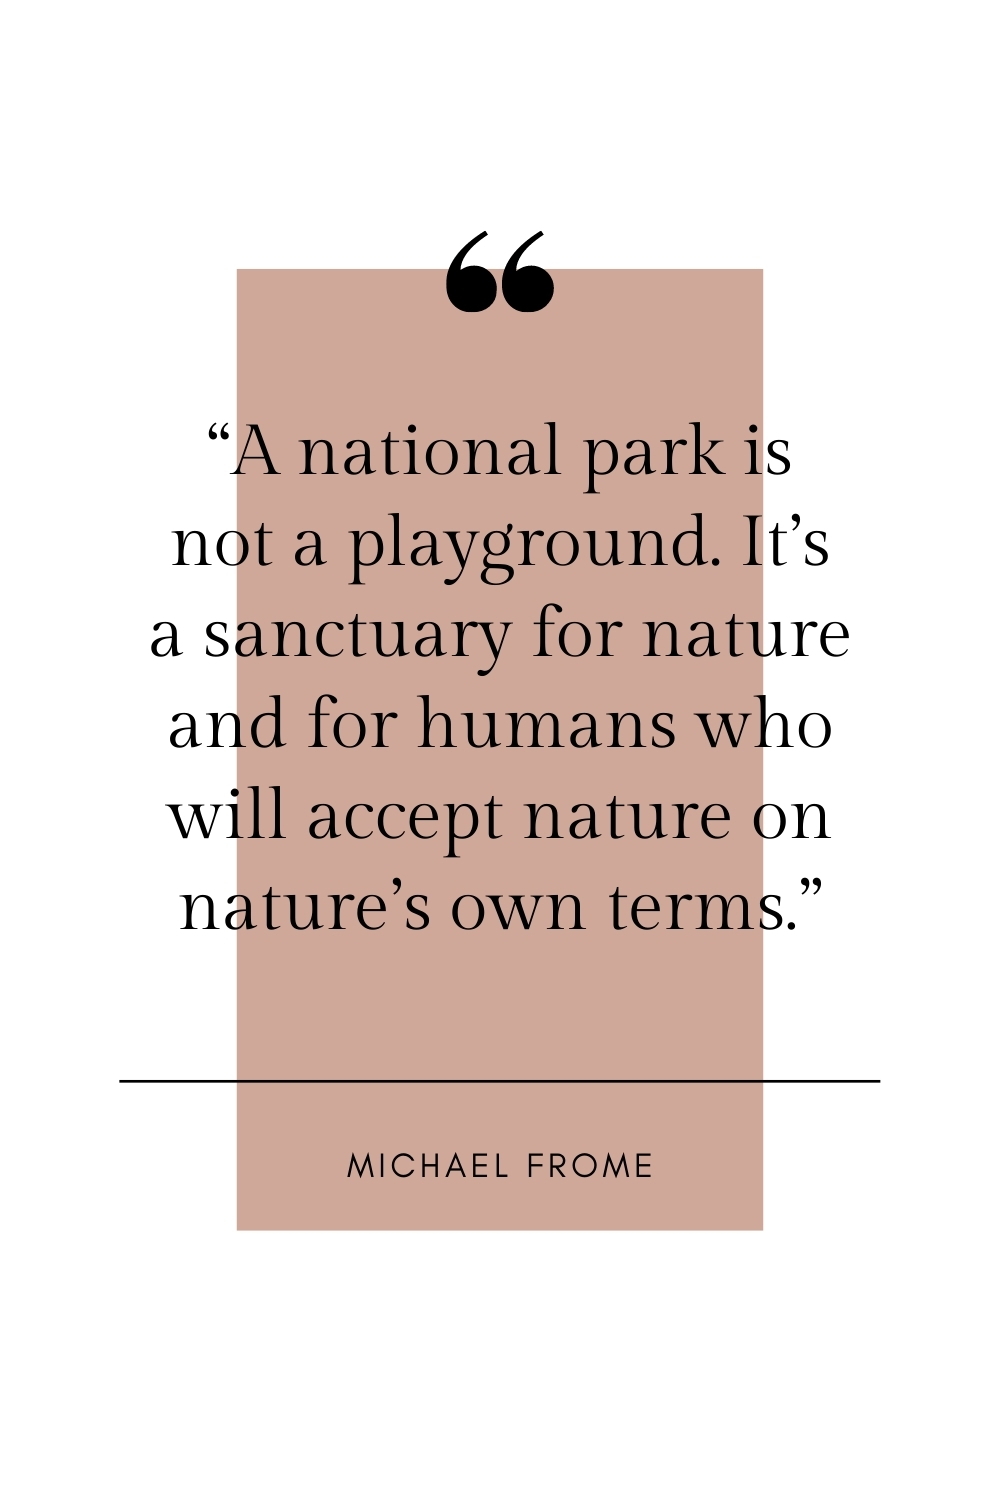 Michael Frome quote